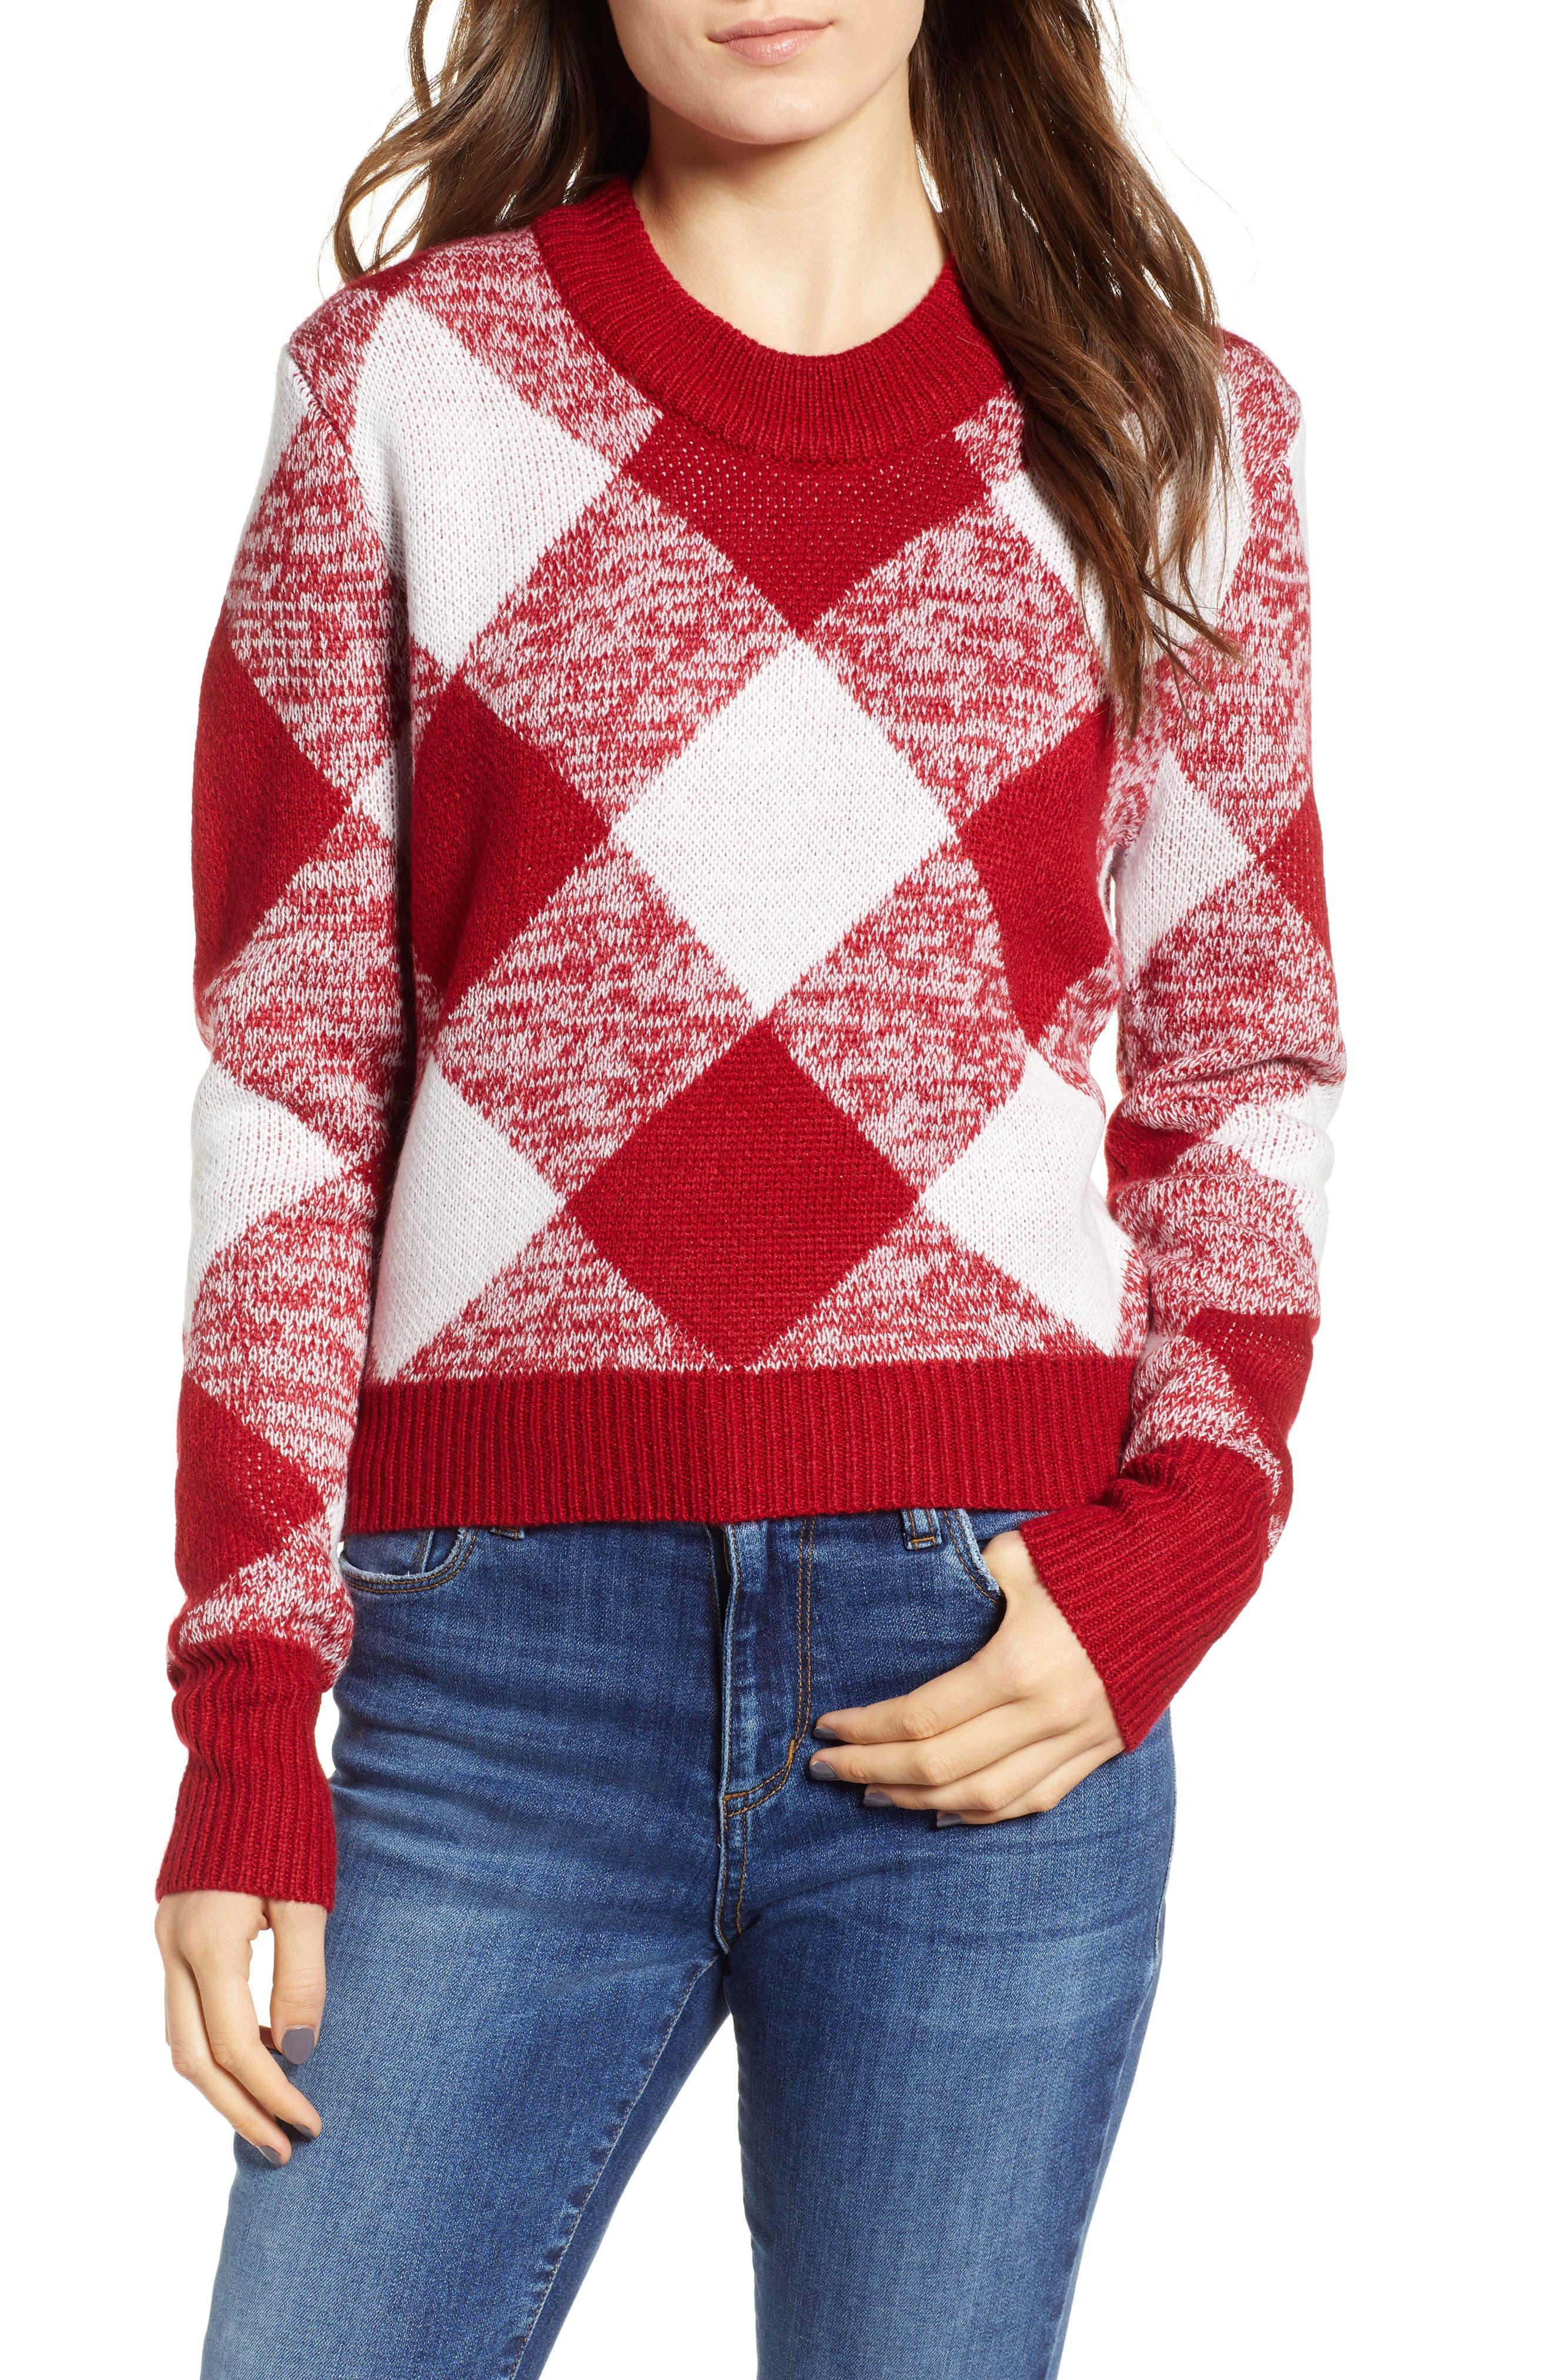 Oversize Gingham Knit Sweater in Red/White